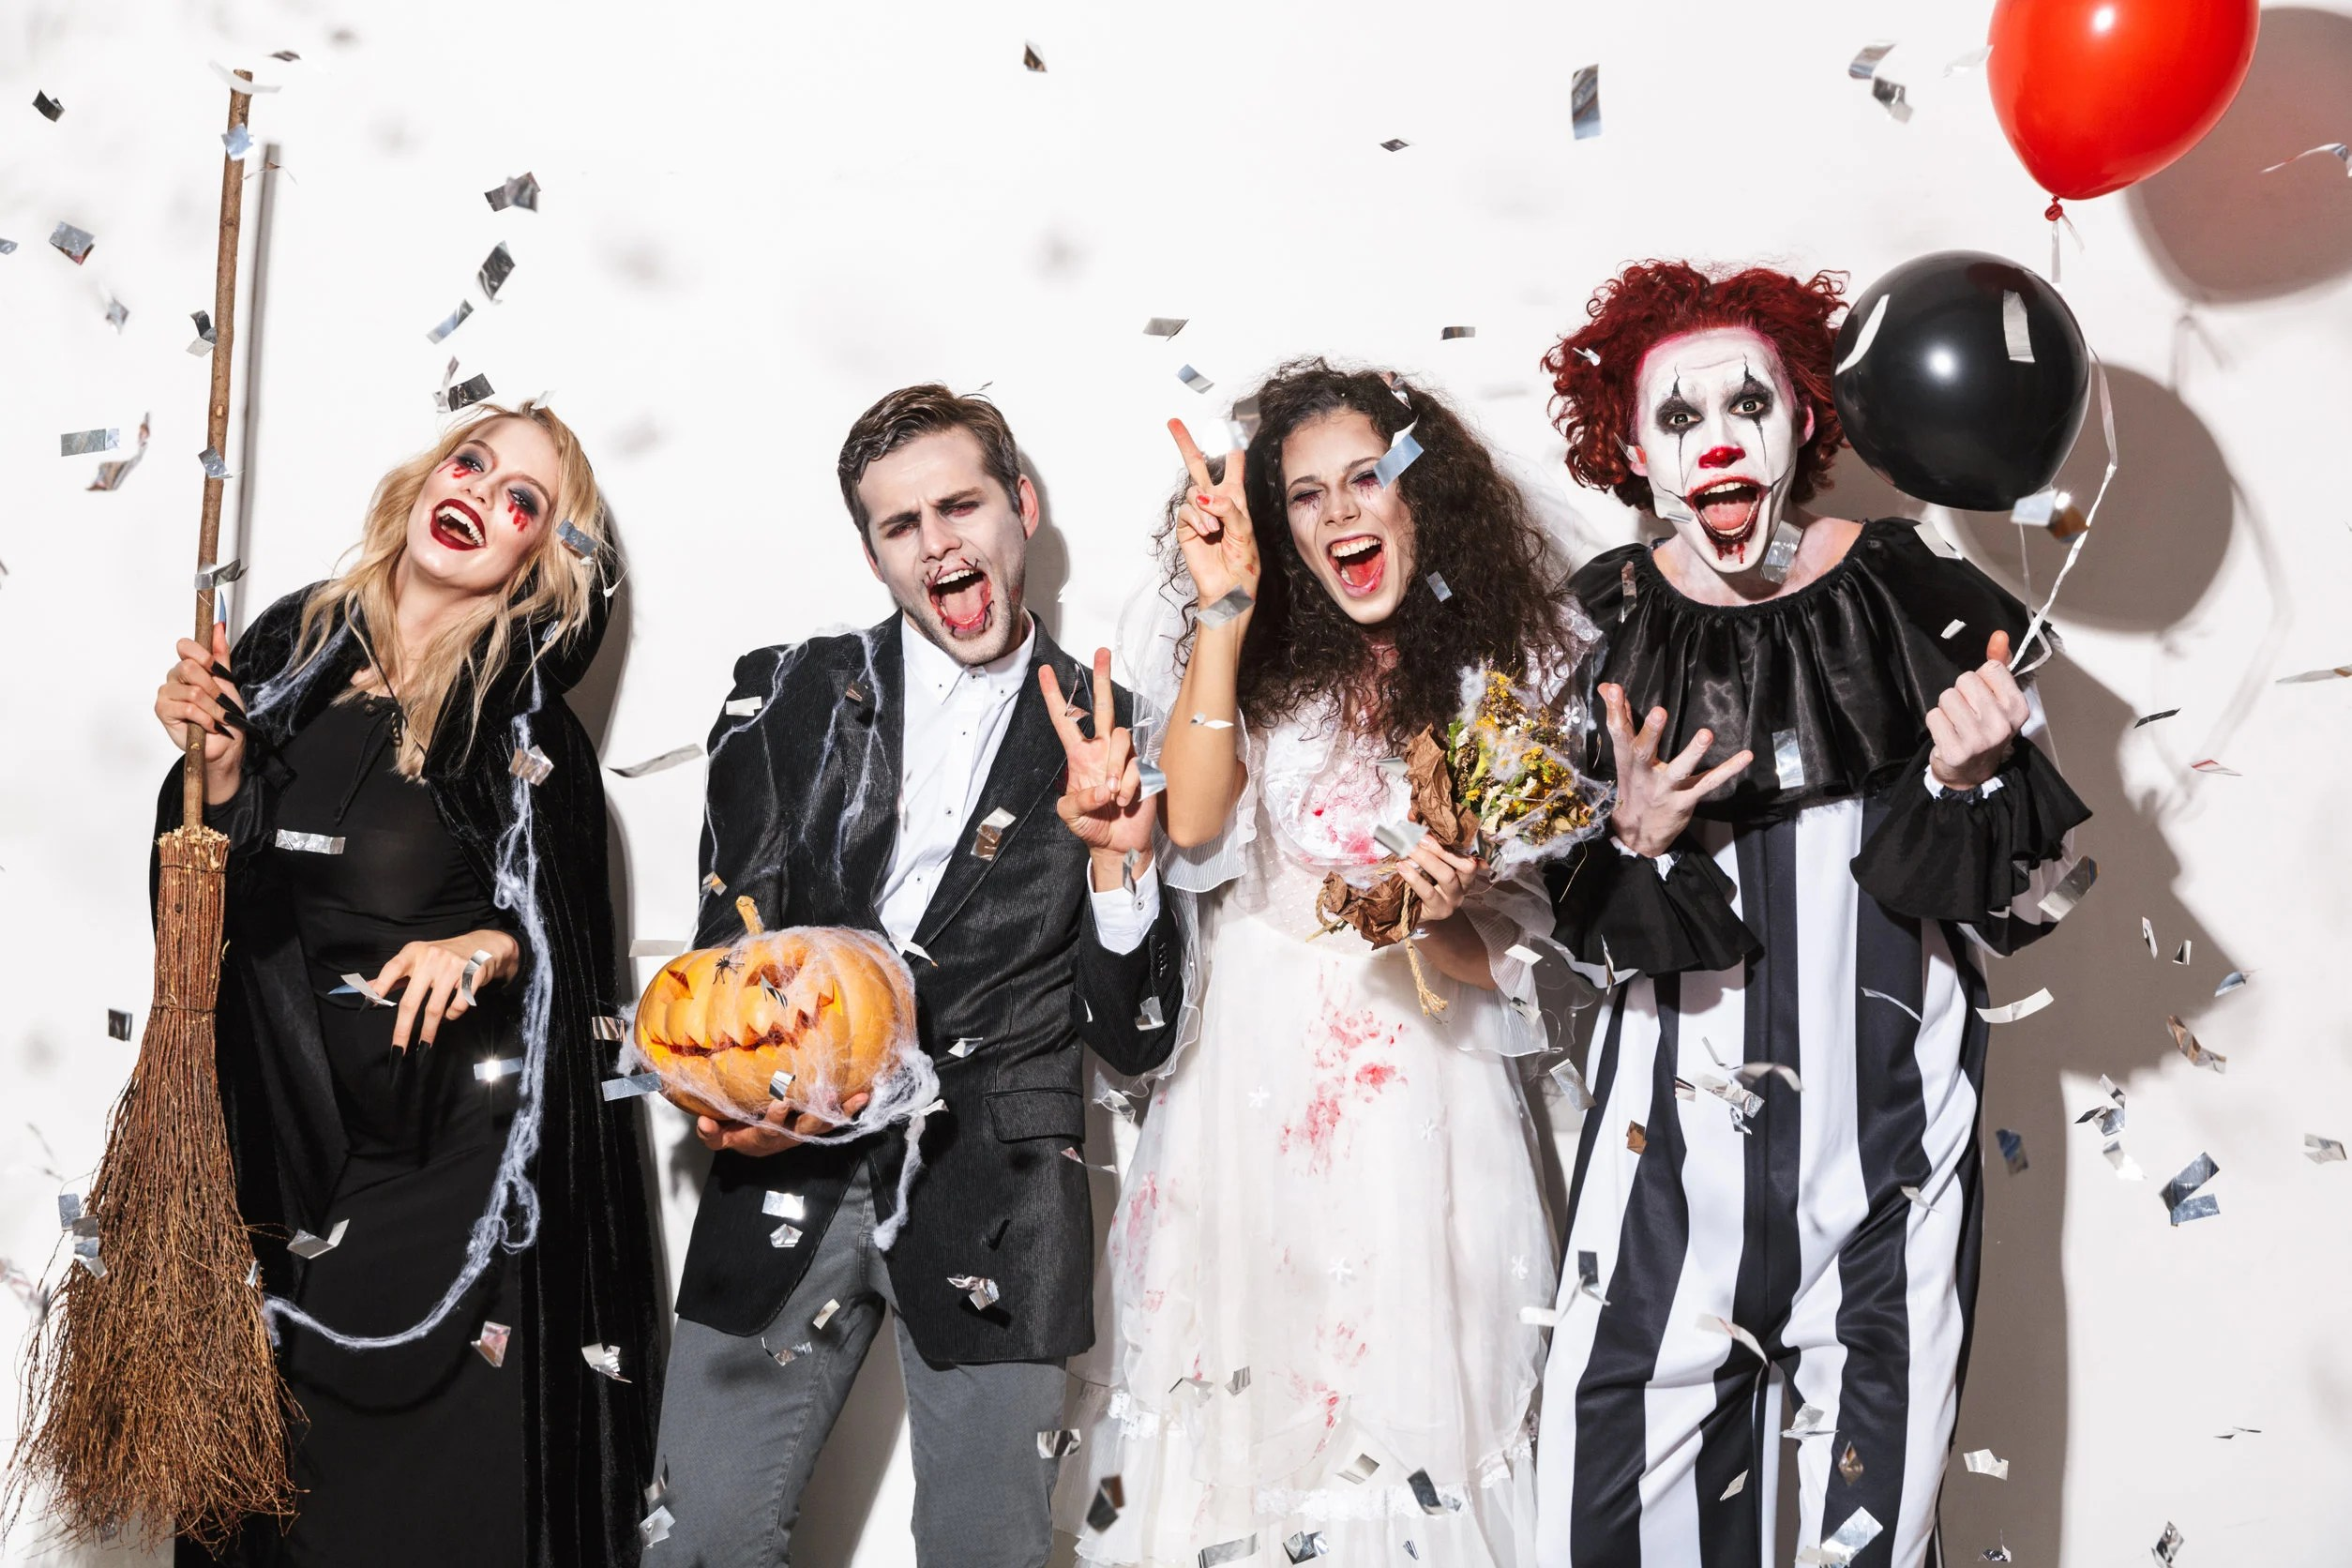 With over 300 bank l. The Ultimate Guide to Spending Halloween in Las Vegas   2021 Events